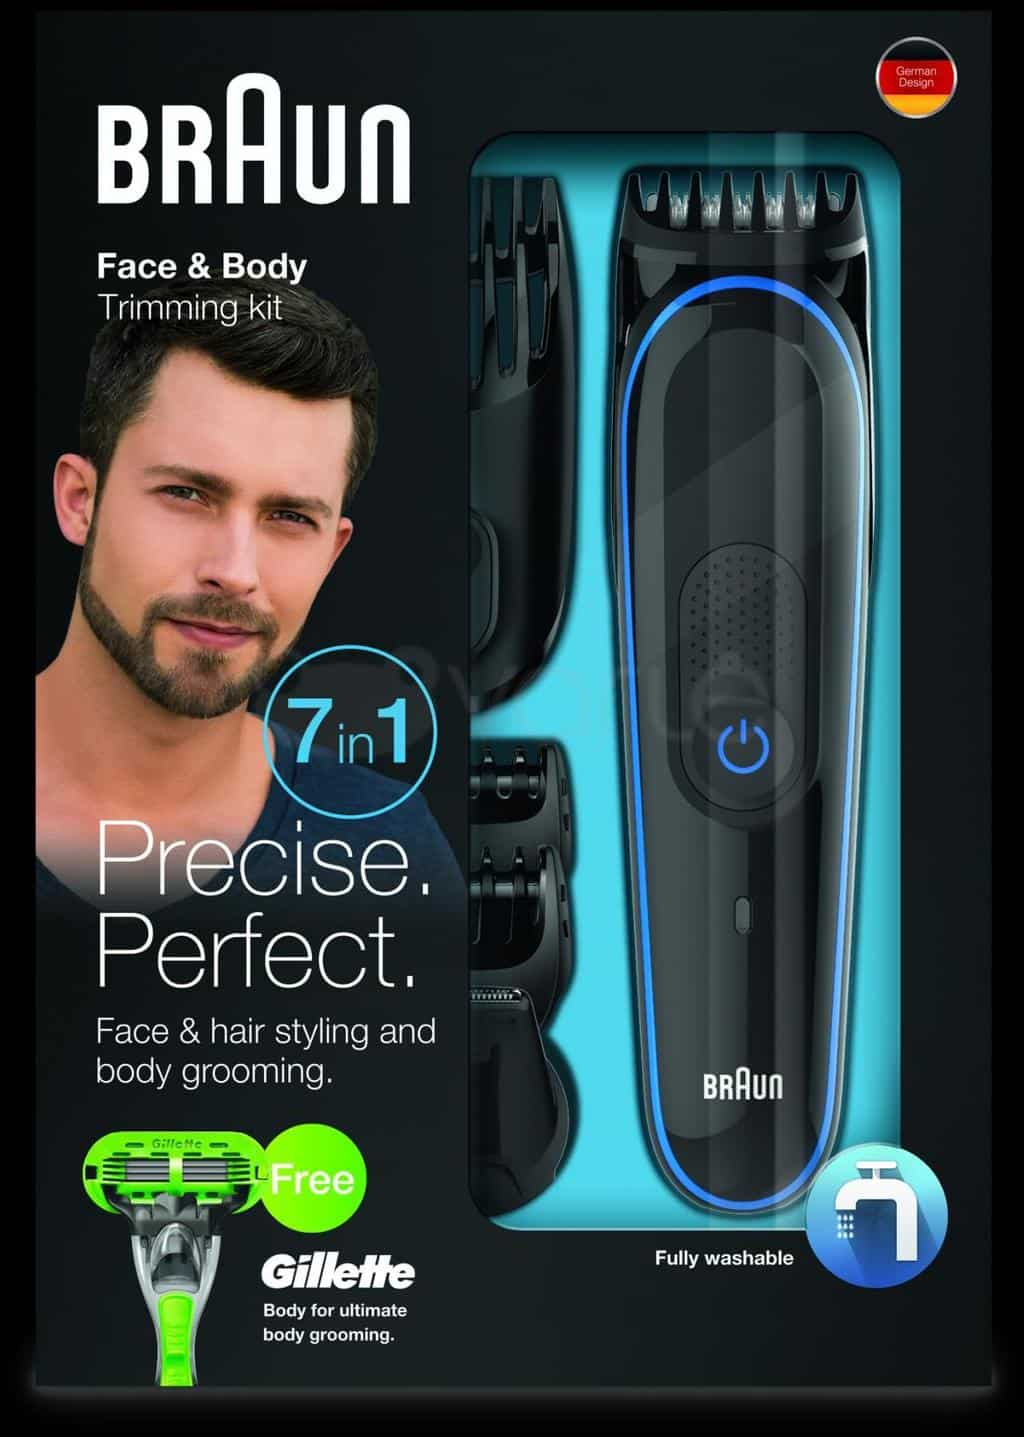 29-1 Best Beard Trimmers by 7 Top Brands: Editor's Top 3 Picks